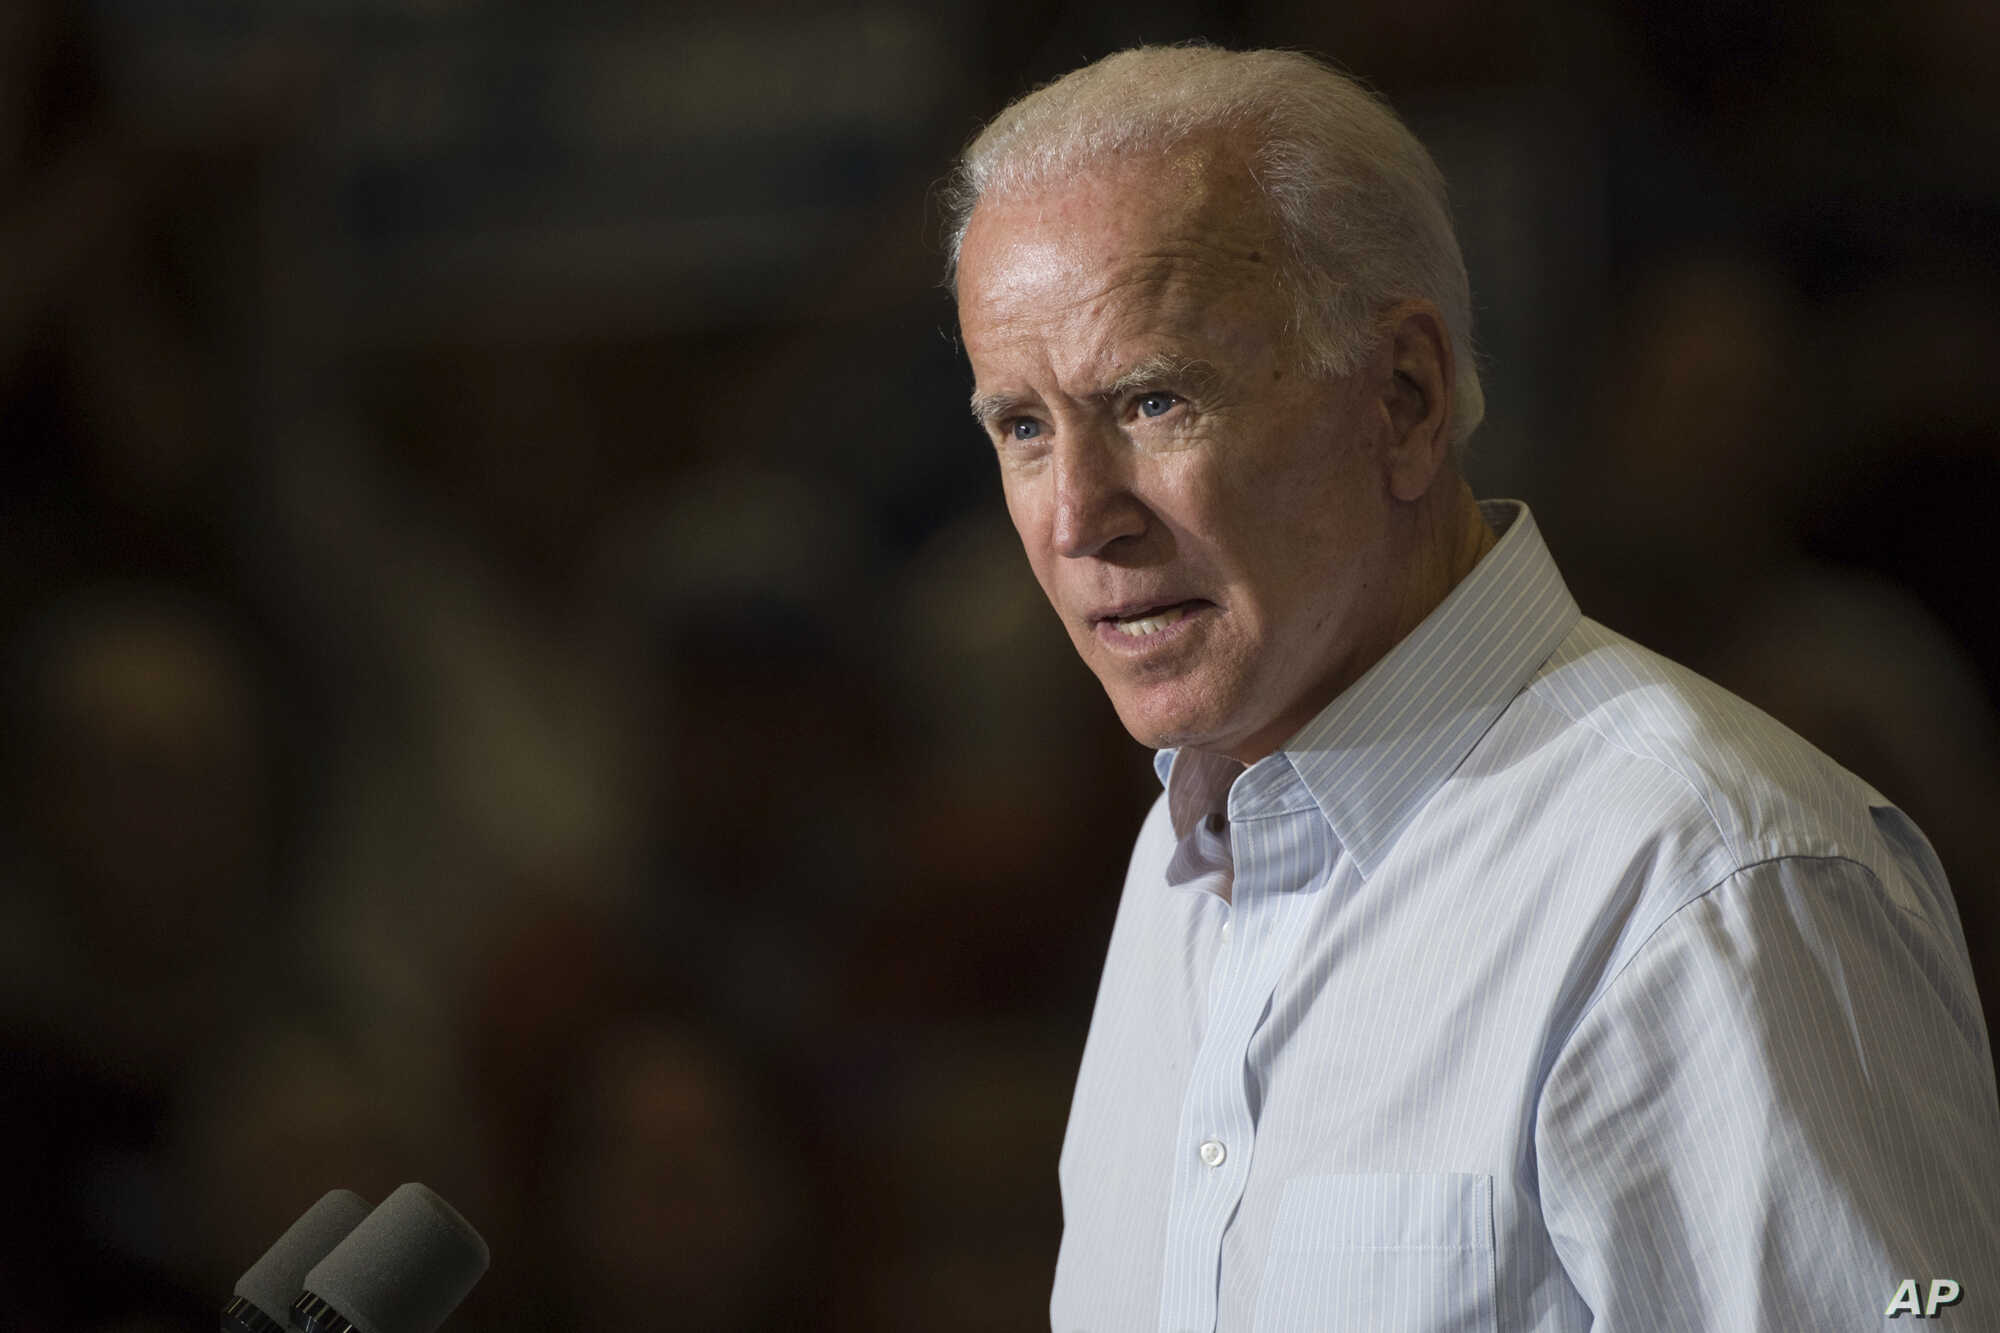 Former vice president Joe Biden speaks during a campaign event for Kentucky democratic congressional candidate Amy McGrath in Owingsville, Kentucky, Oct. 12, 2018.